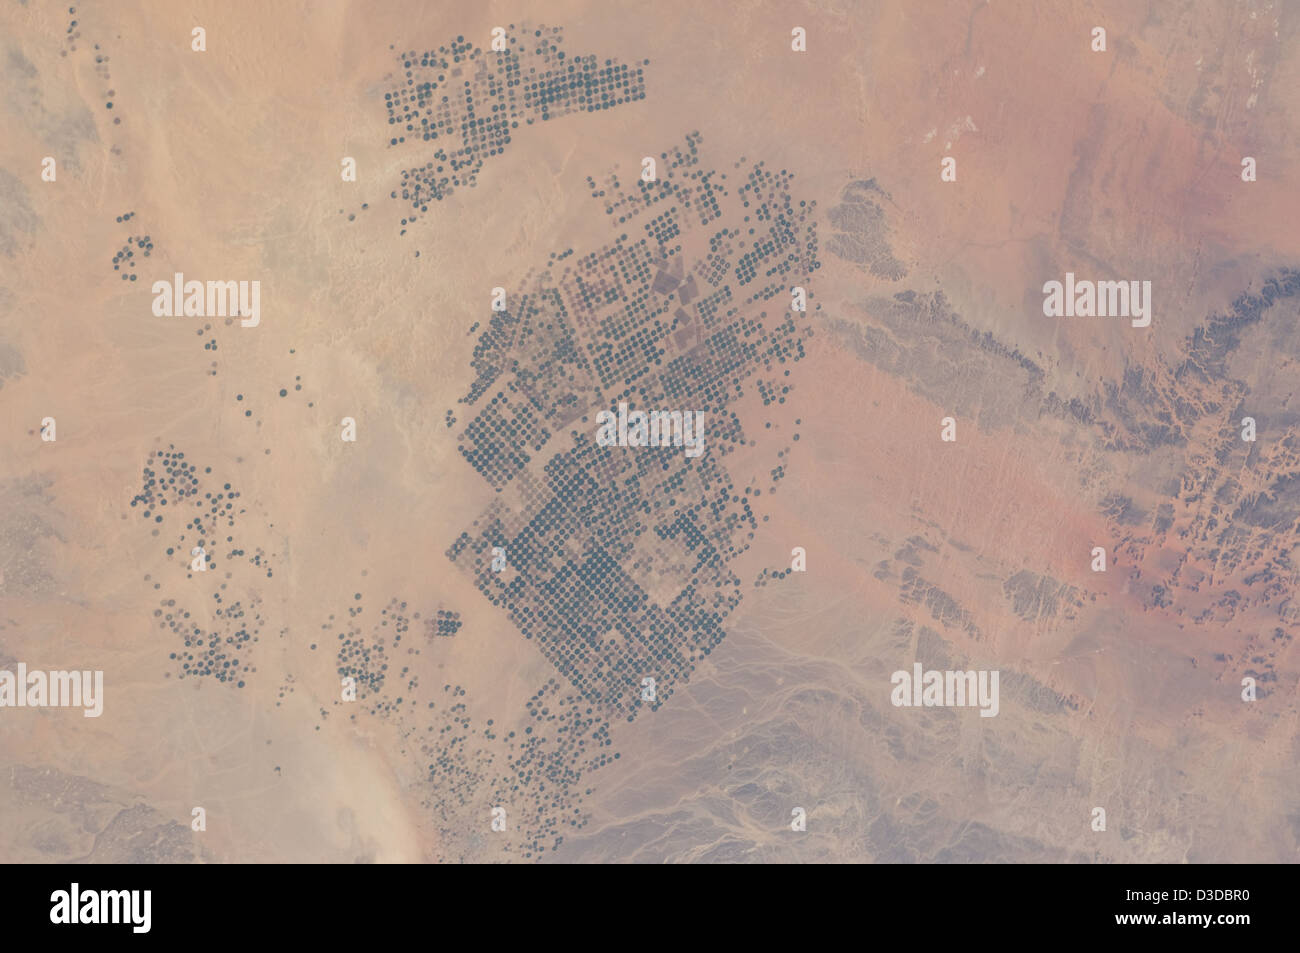 Wadi As-Sirhan Basin, Saudi Arabia (NASA, International Space Station, 02/21/12) - Stock Image